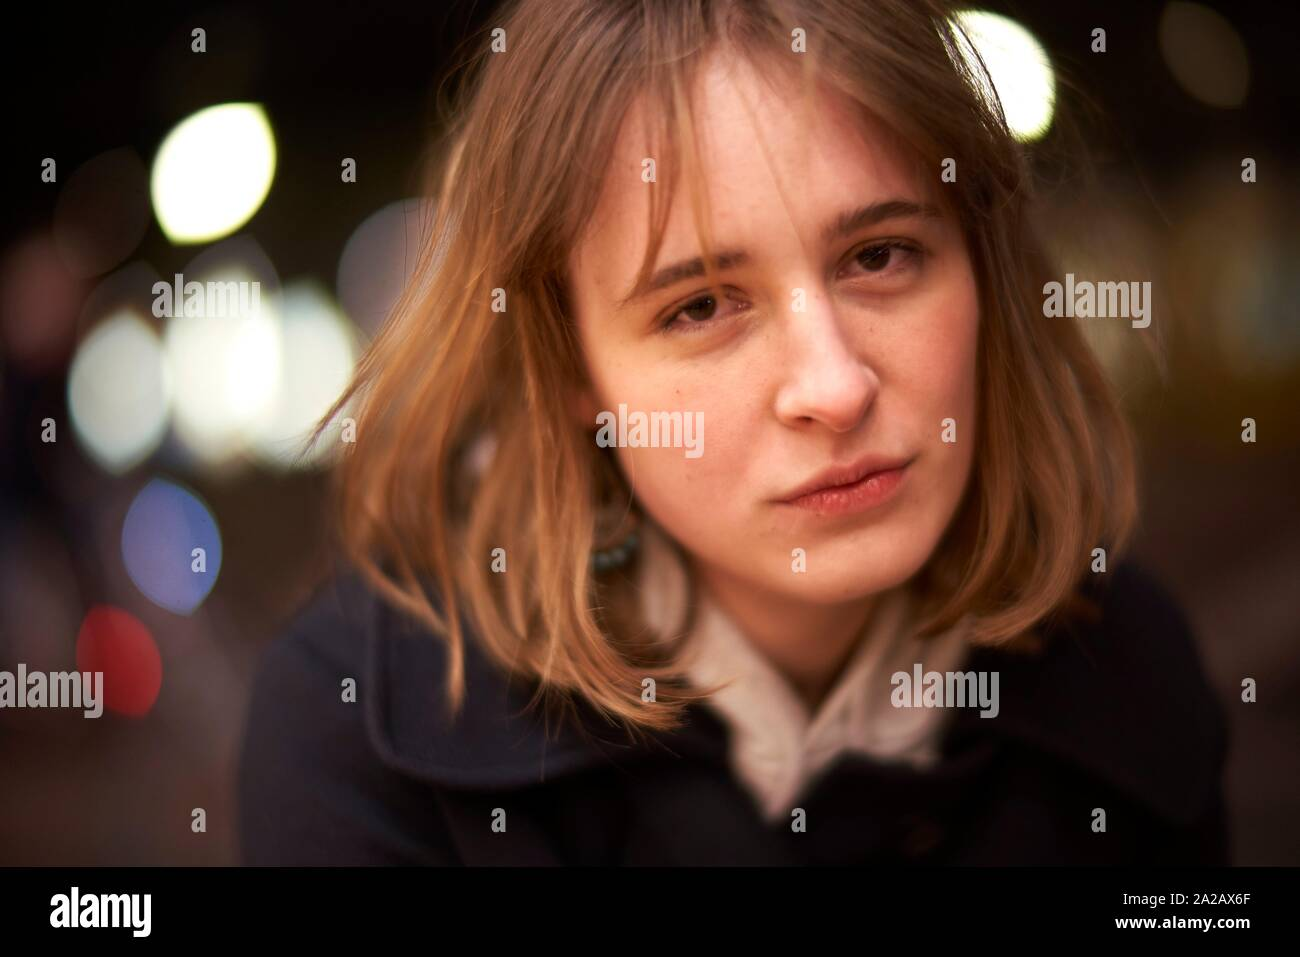 portrait of woman at night in Berlin, Germany Stock Photo